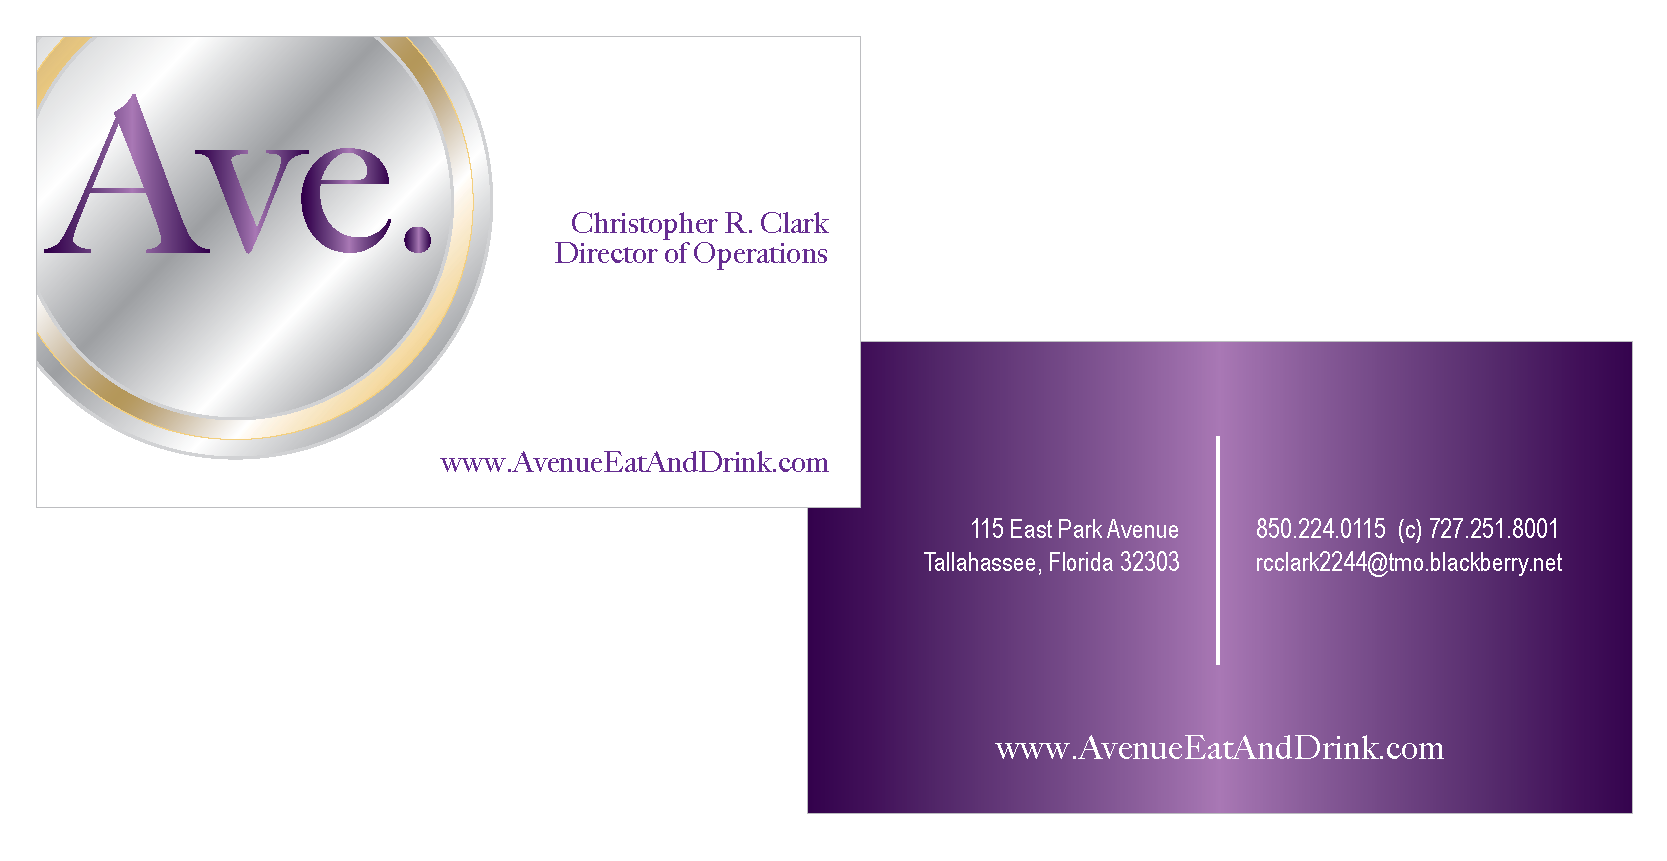 avenue eat & drink business card